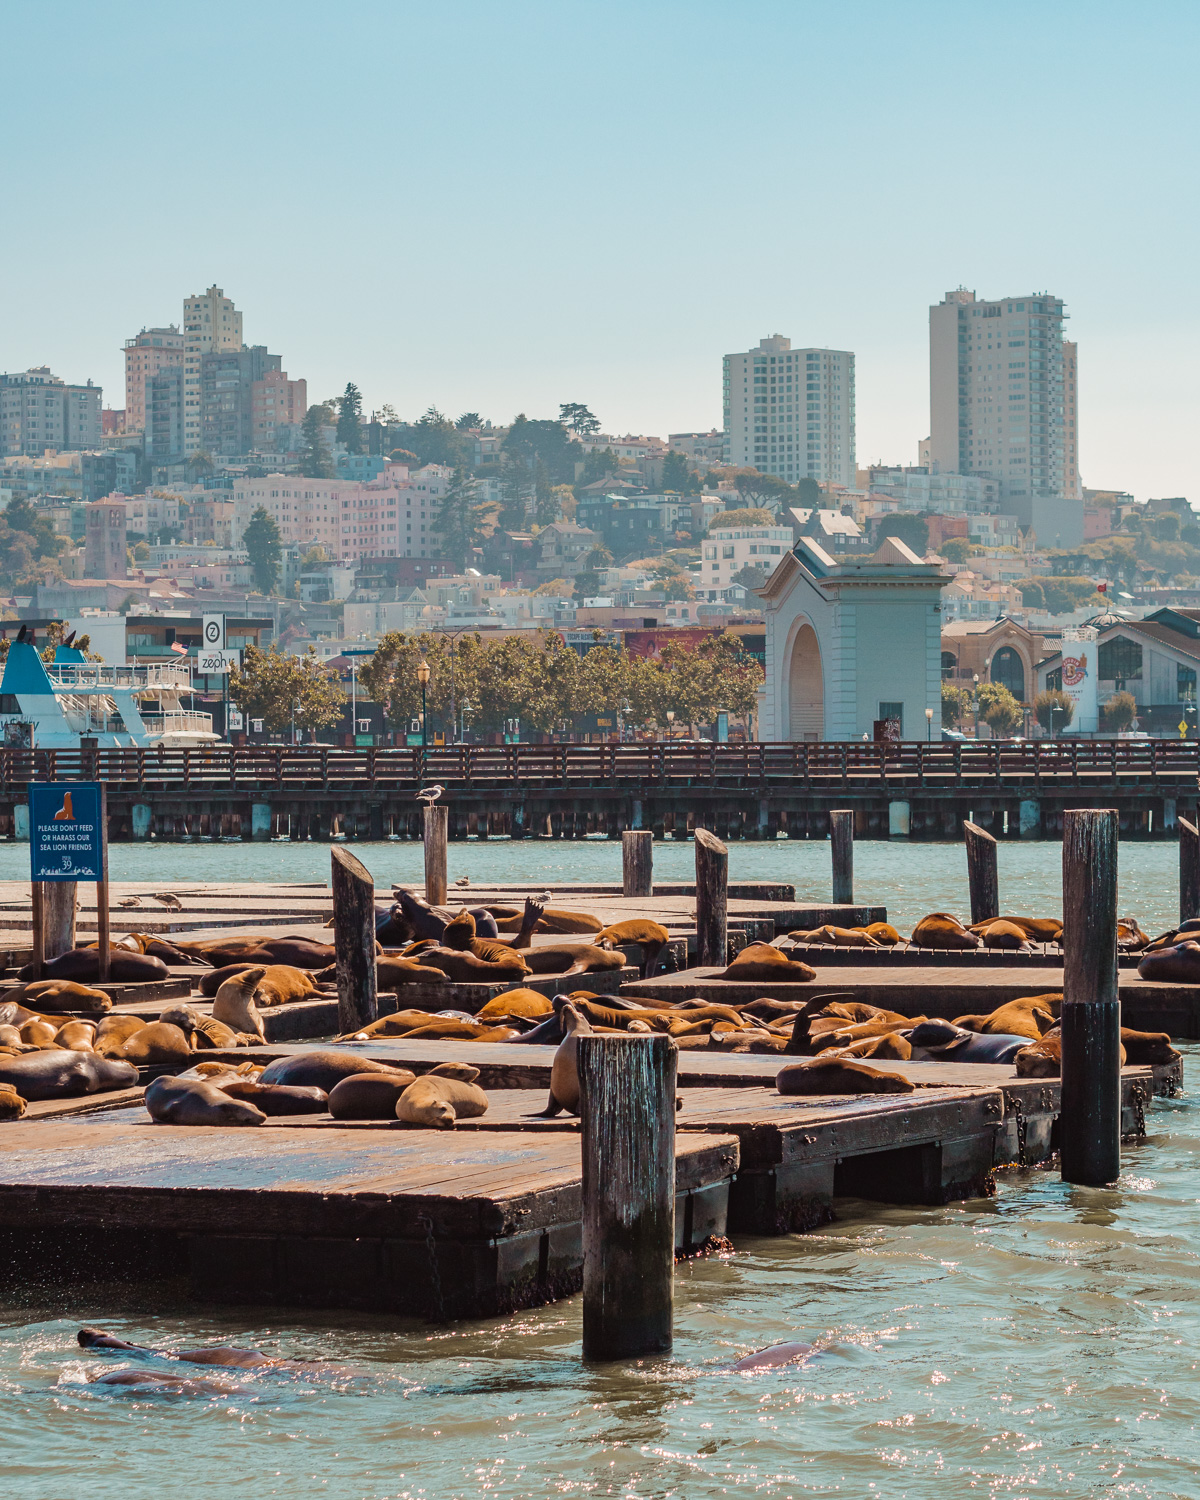 sealions at Pier 39 in San Francisco